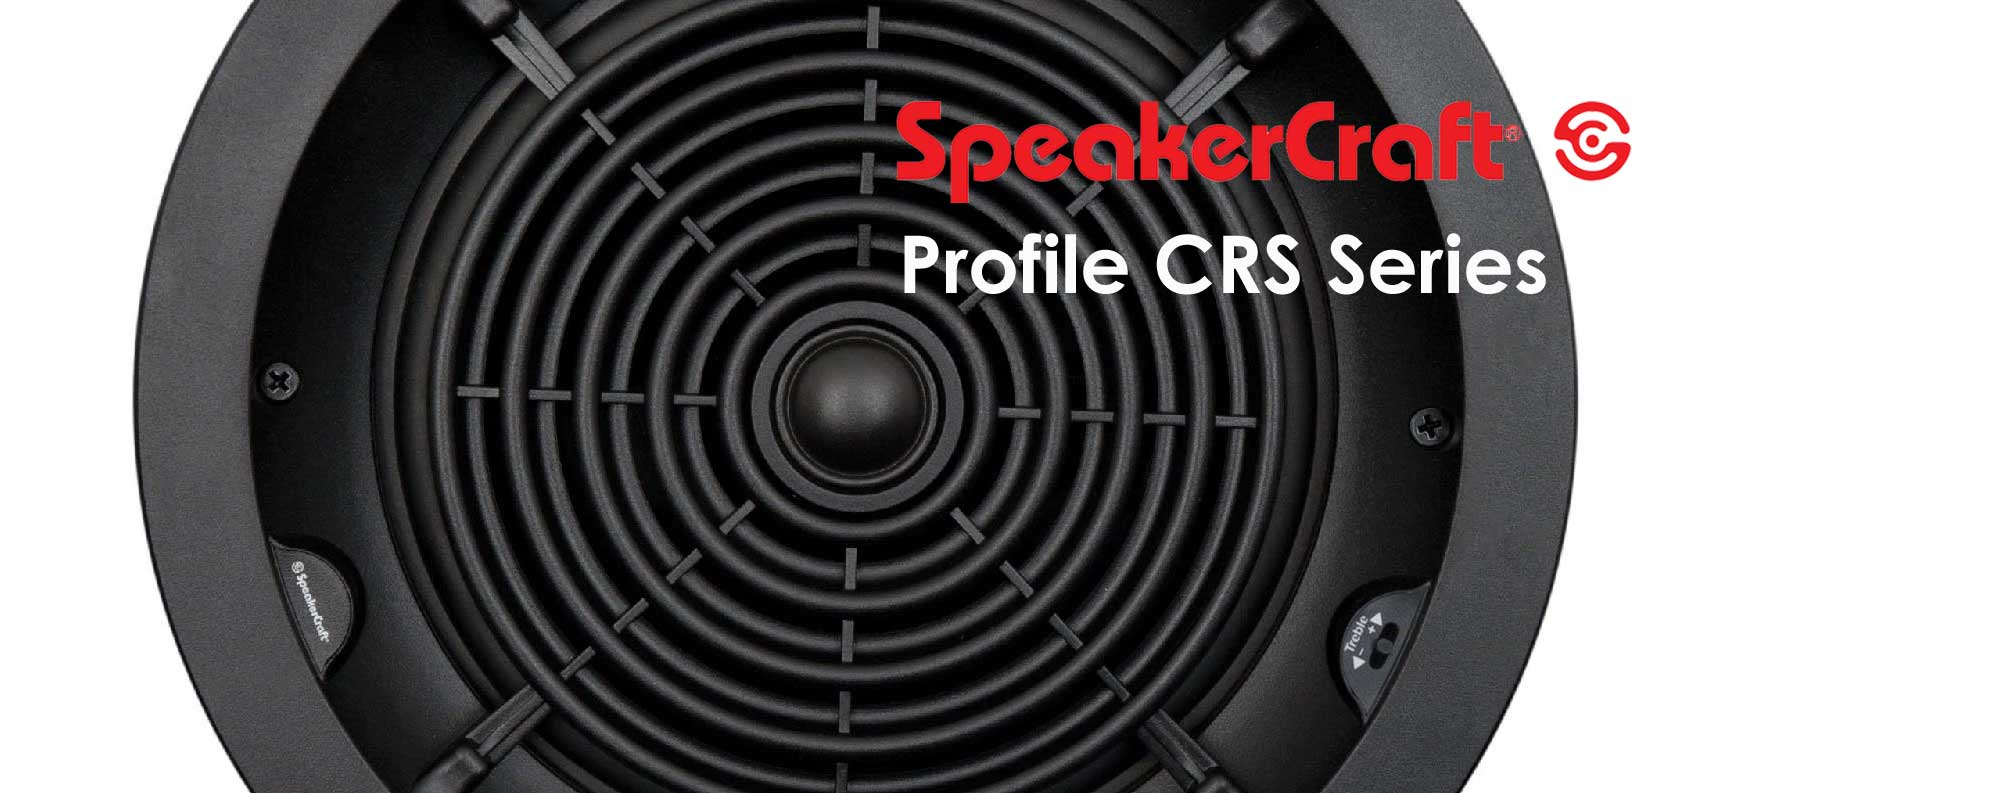 Speakercraft Profile CRS Series Inceiling speakers